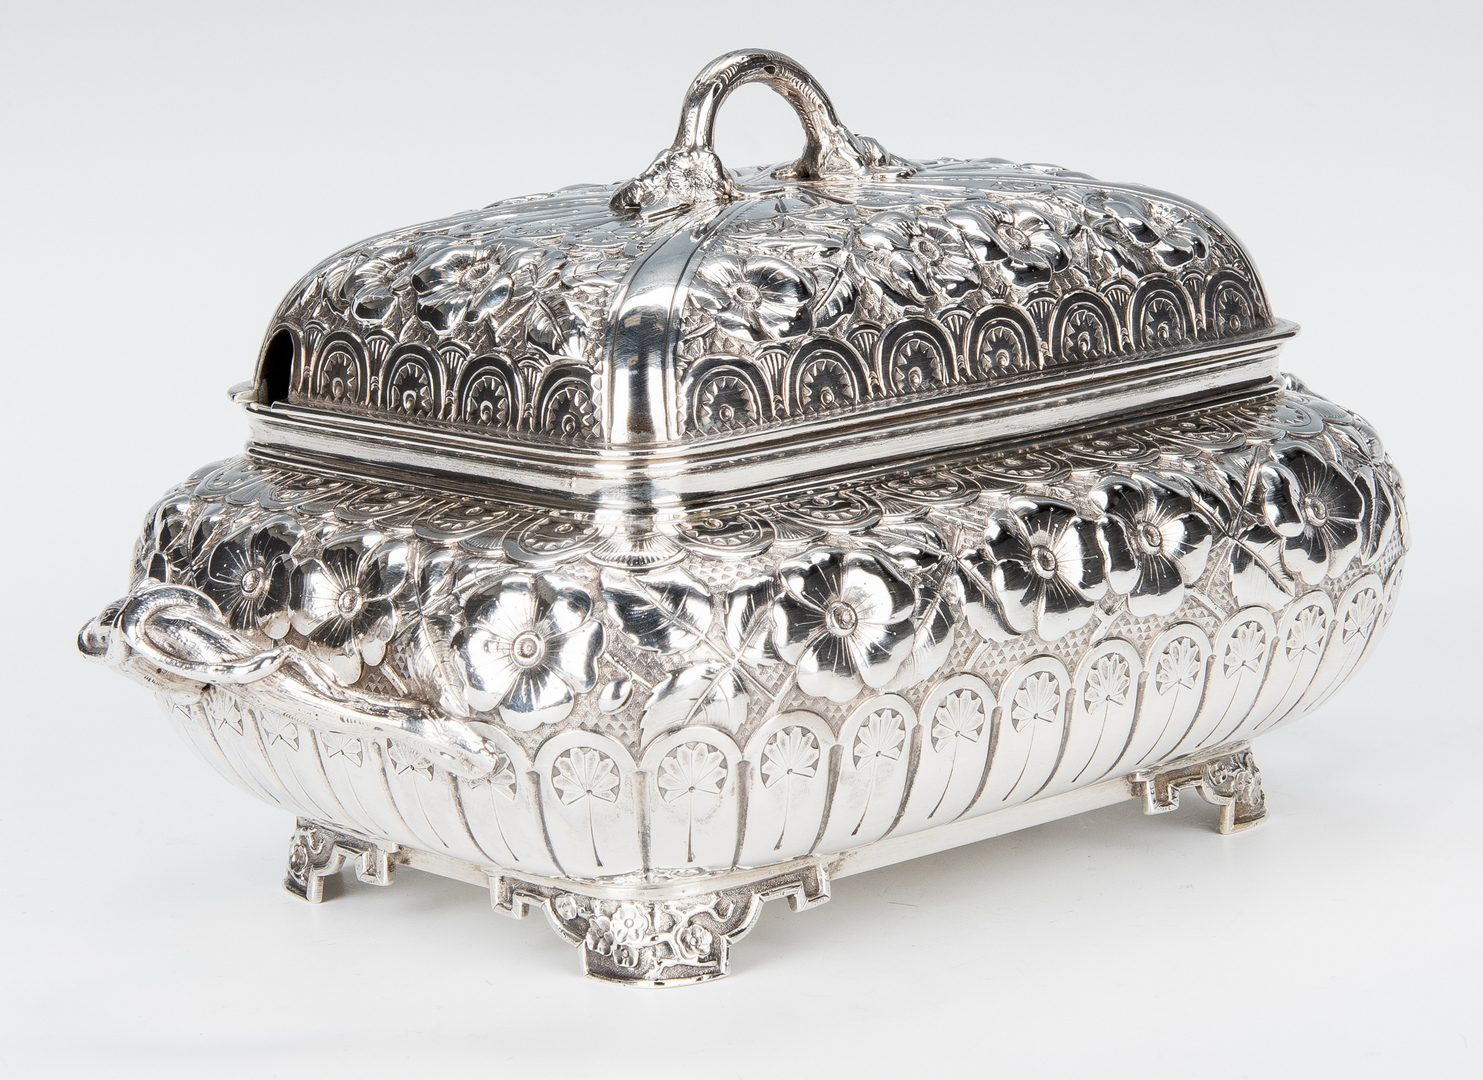 Lot 70: John Vansant Aesthetic Silver Dish and Cover